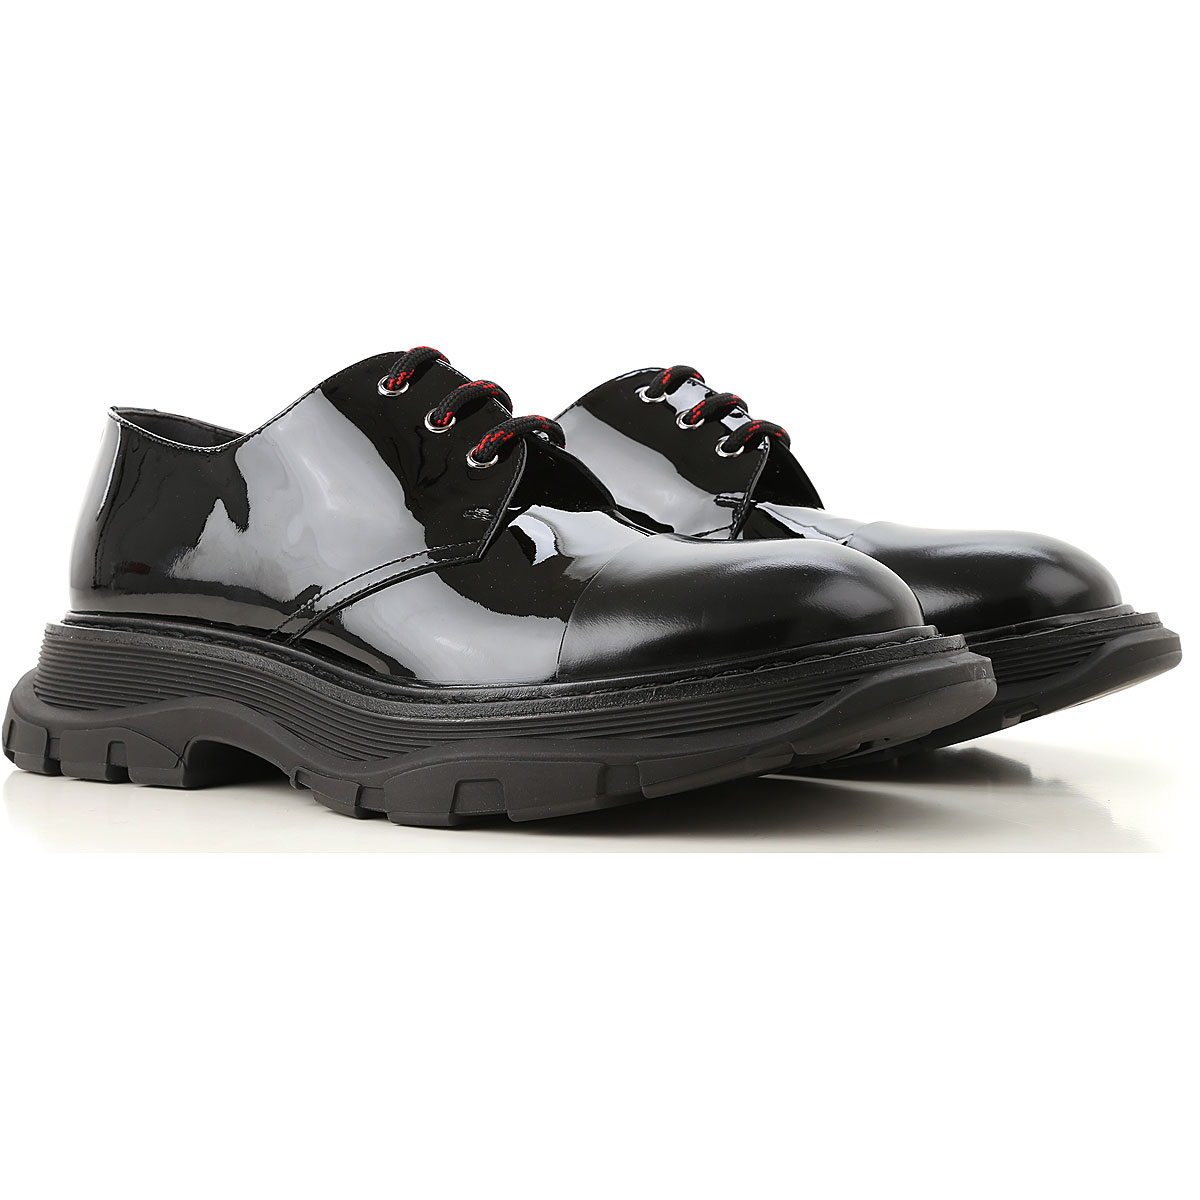 Image of Alexander McQueen Lace Up Shoes for Men Oxfords, Derbies and Brogues, Black, Patent, 2017, EUR 40 - US 7 - UK 6 EUR 41 - US 8 - UK 7 EUR 42 - US 9 - UK 8 EUR 45 - US 12 - UK 11